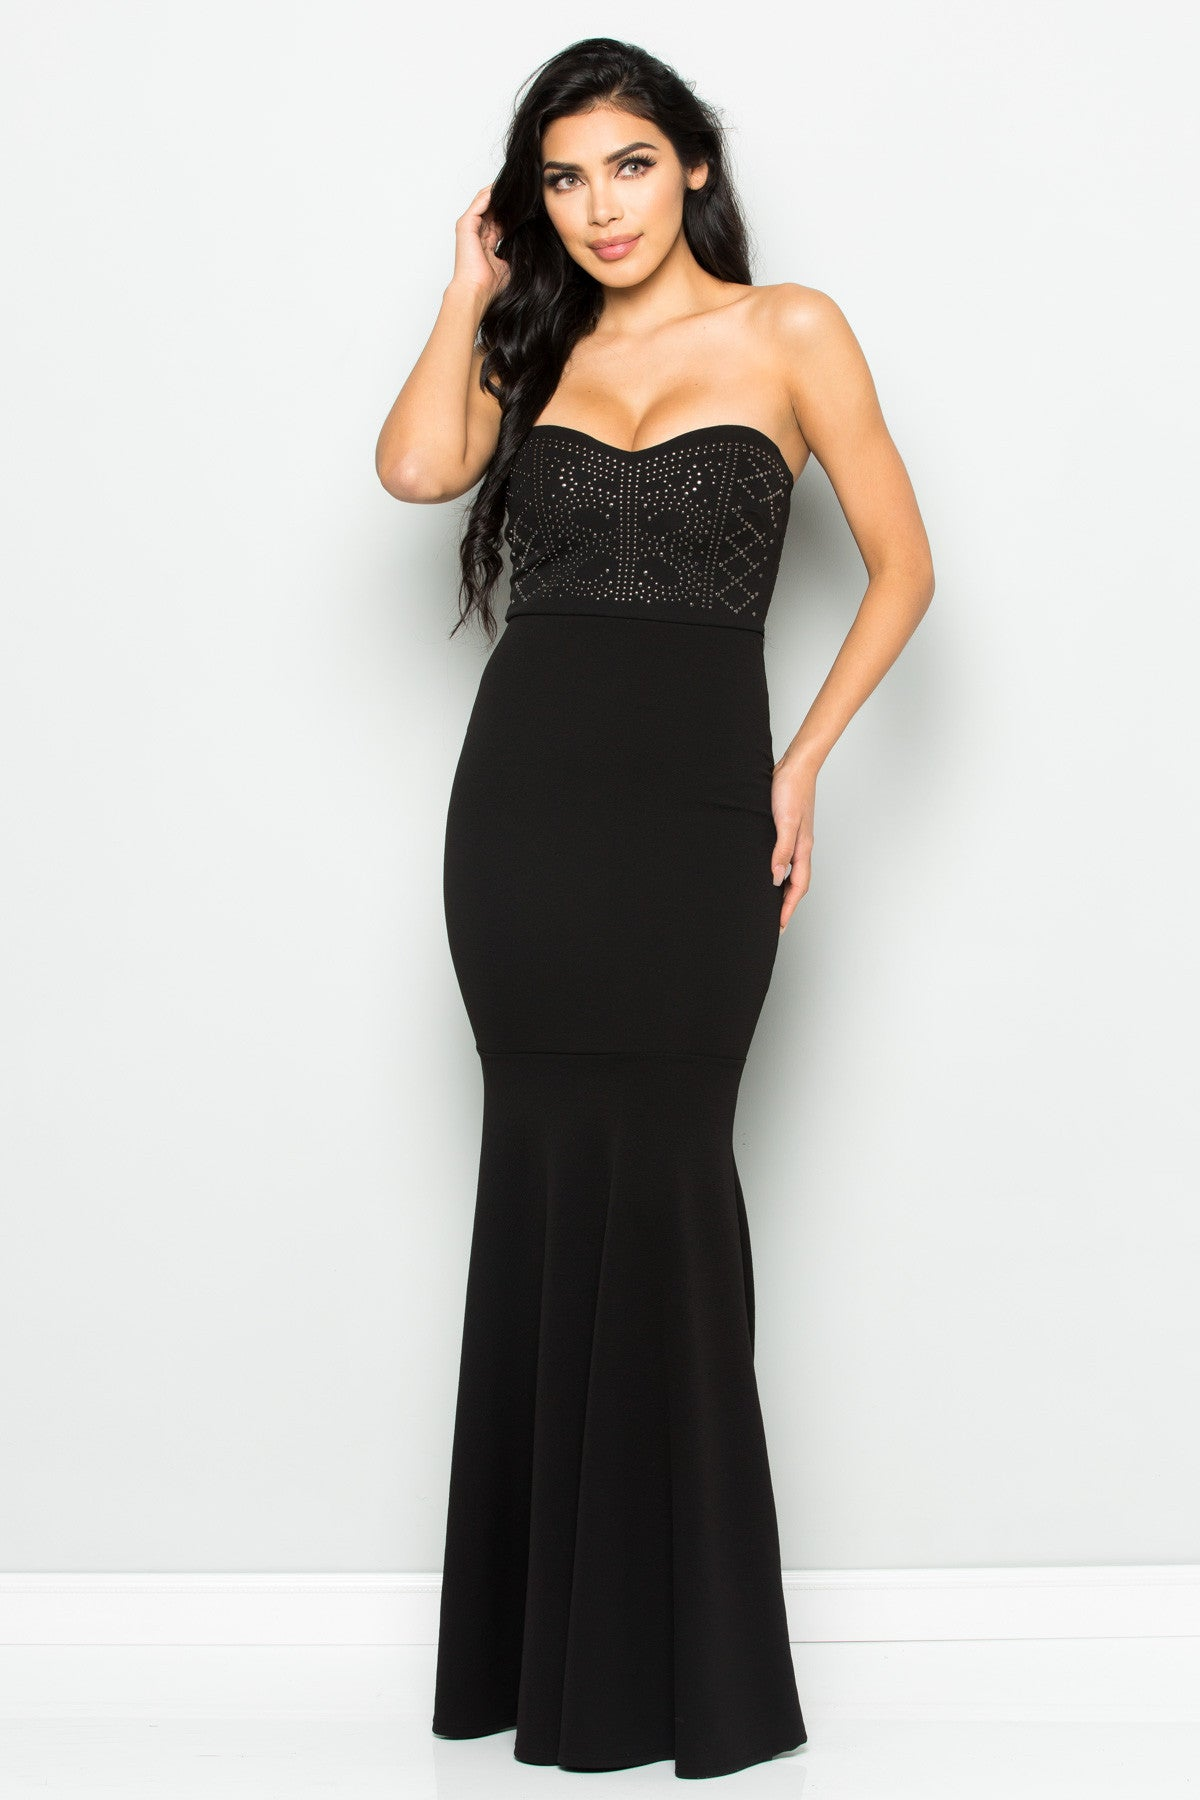 Beaded Sweetheart Mermaid Tail Gown in Black - Dresses - My Yuccie - 7